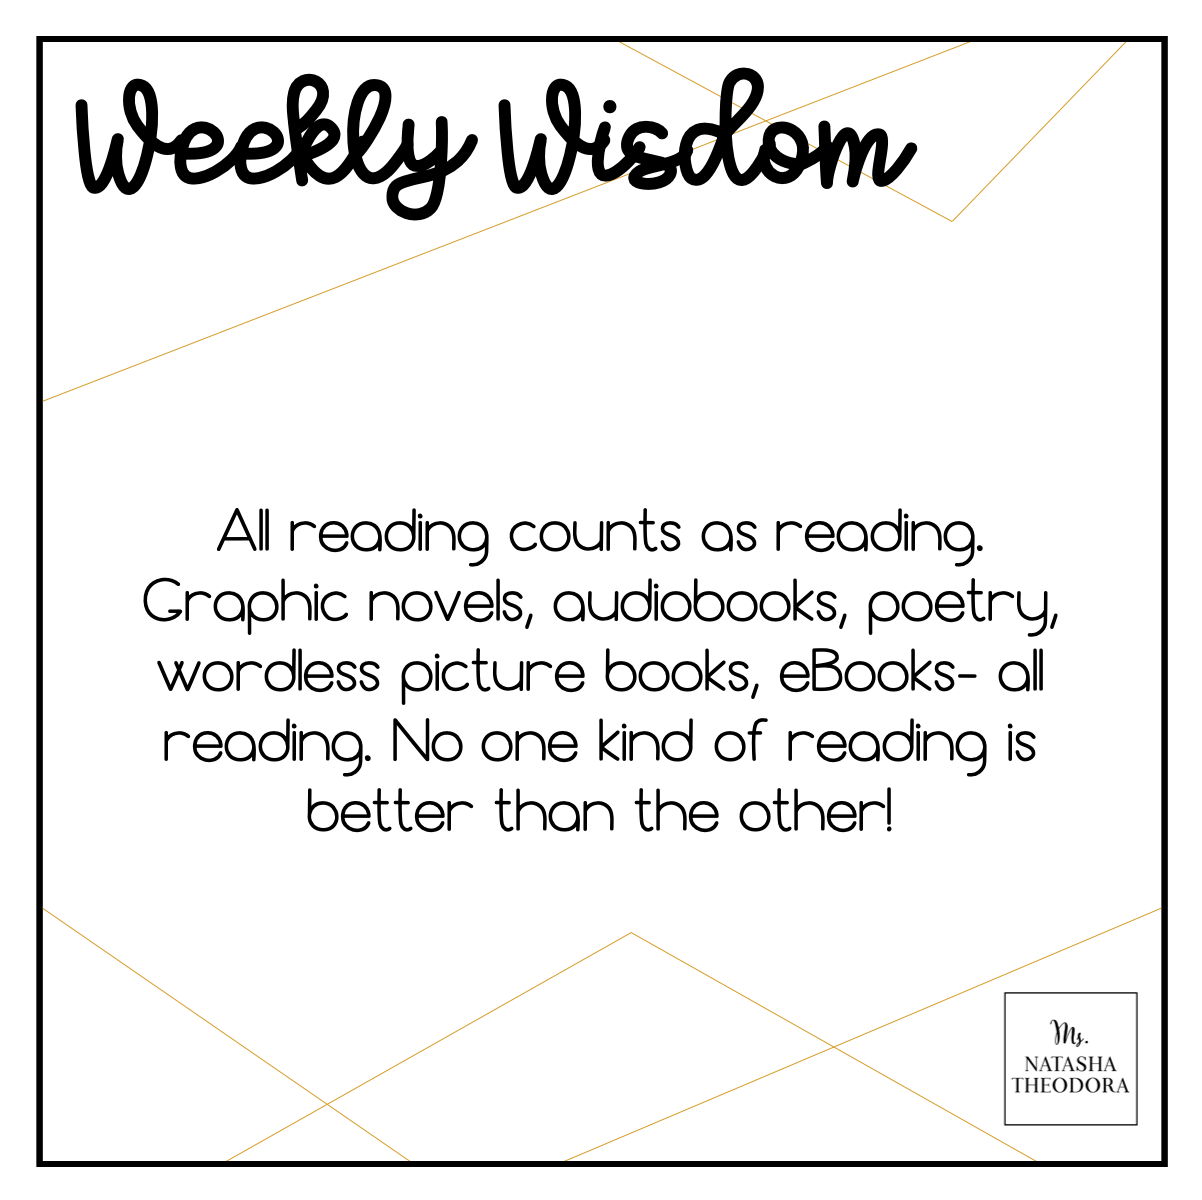 All reading counts as reading. Graphic novels, audiobooks, poetry, wordless picture books, eBooks-all reading. No one kind of reading is better than the other.